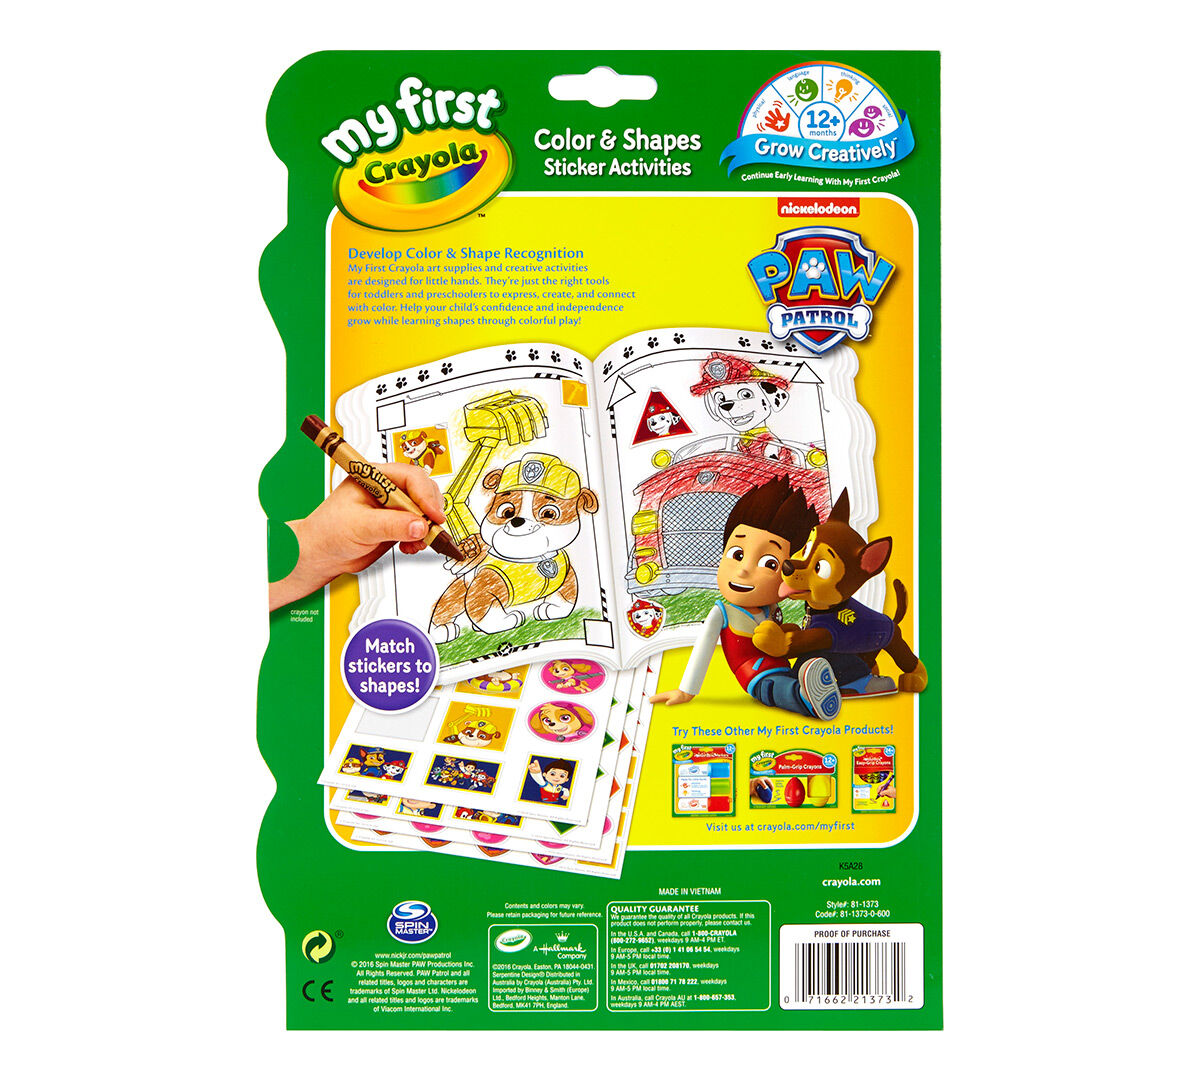 My First Crayola Color & Shapes Sticker Activities Paw Patrol - Crayola